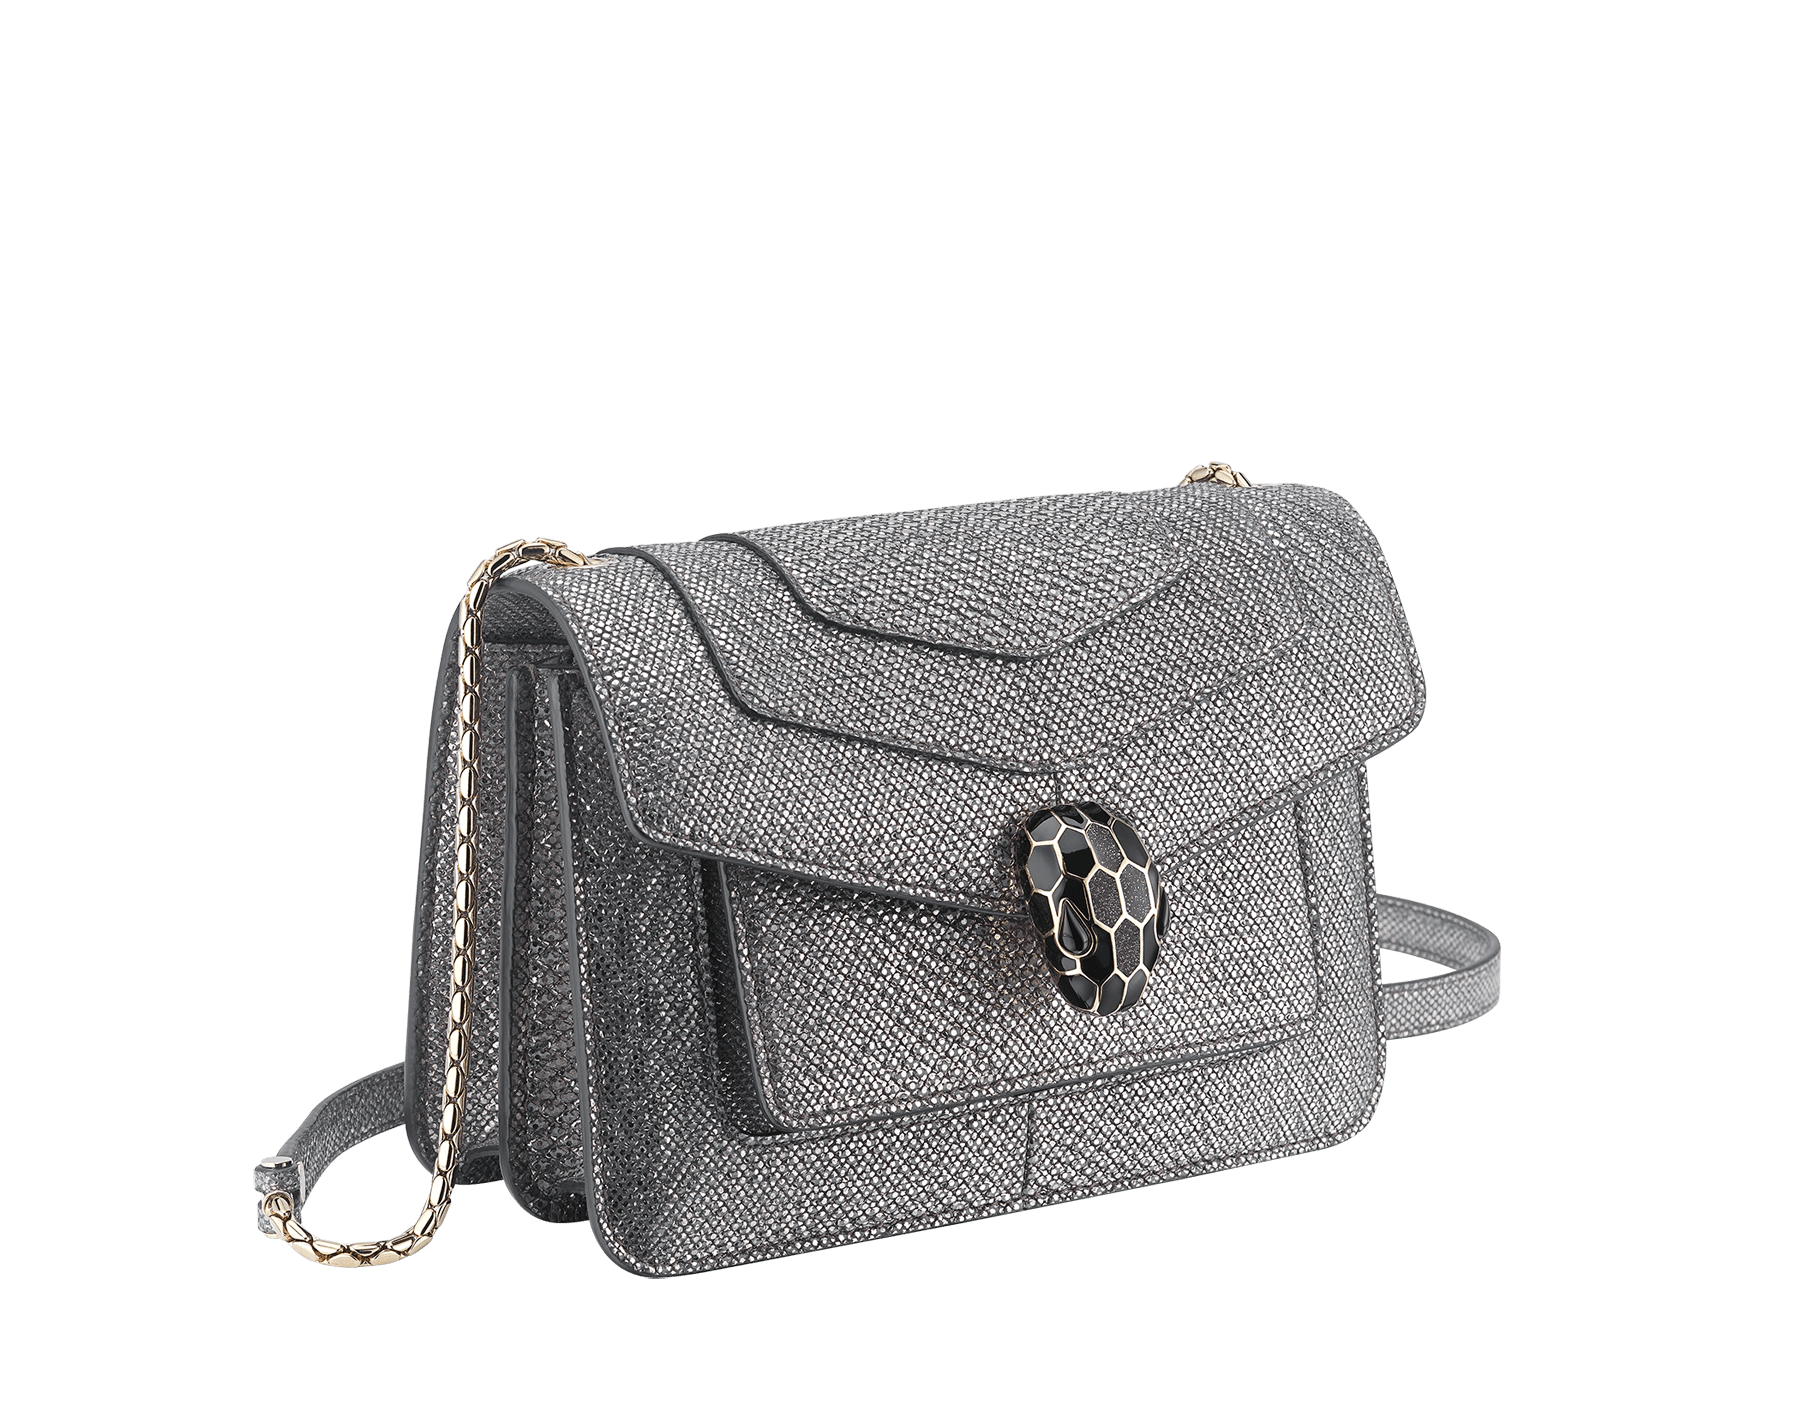 """Serpenti Forever"" crossbody bag in charcoal diamond metallic karung skin. Iconic snakehead closure in light gold plated brass enriched with black and glitter hawk's eye enamel and black onyx eyes. 1082-MK image 2"